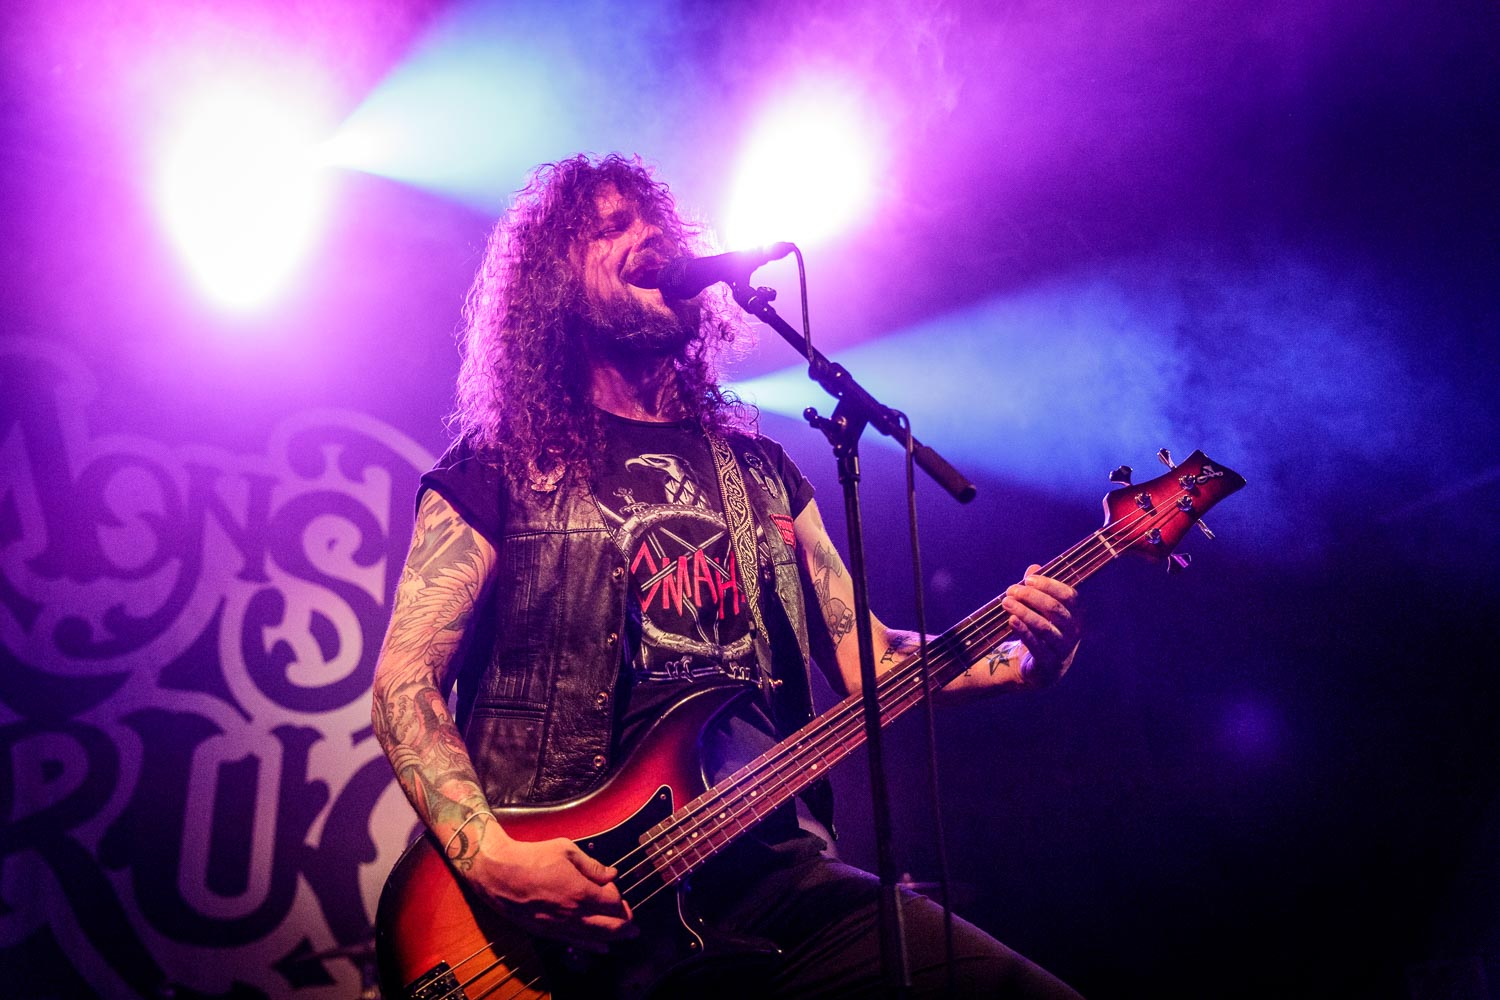 Monster Truck at The Academy 2 in Manchester on April 20th 2019.